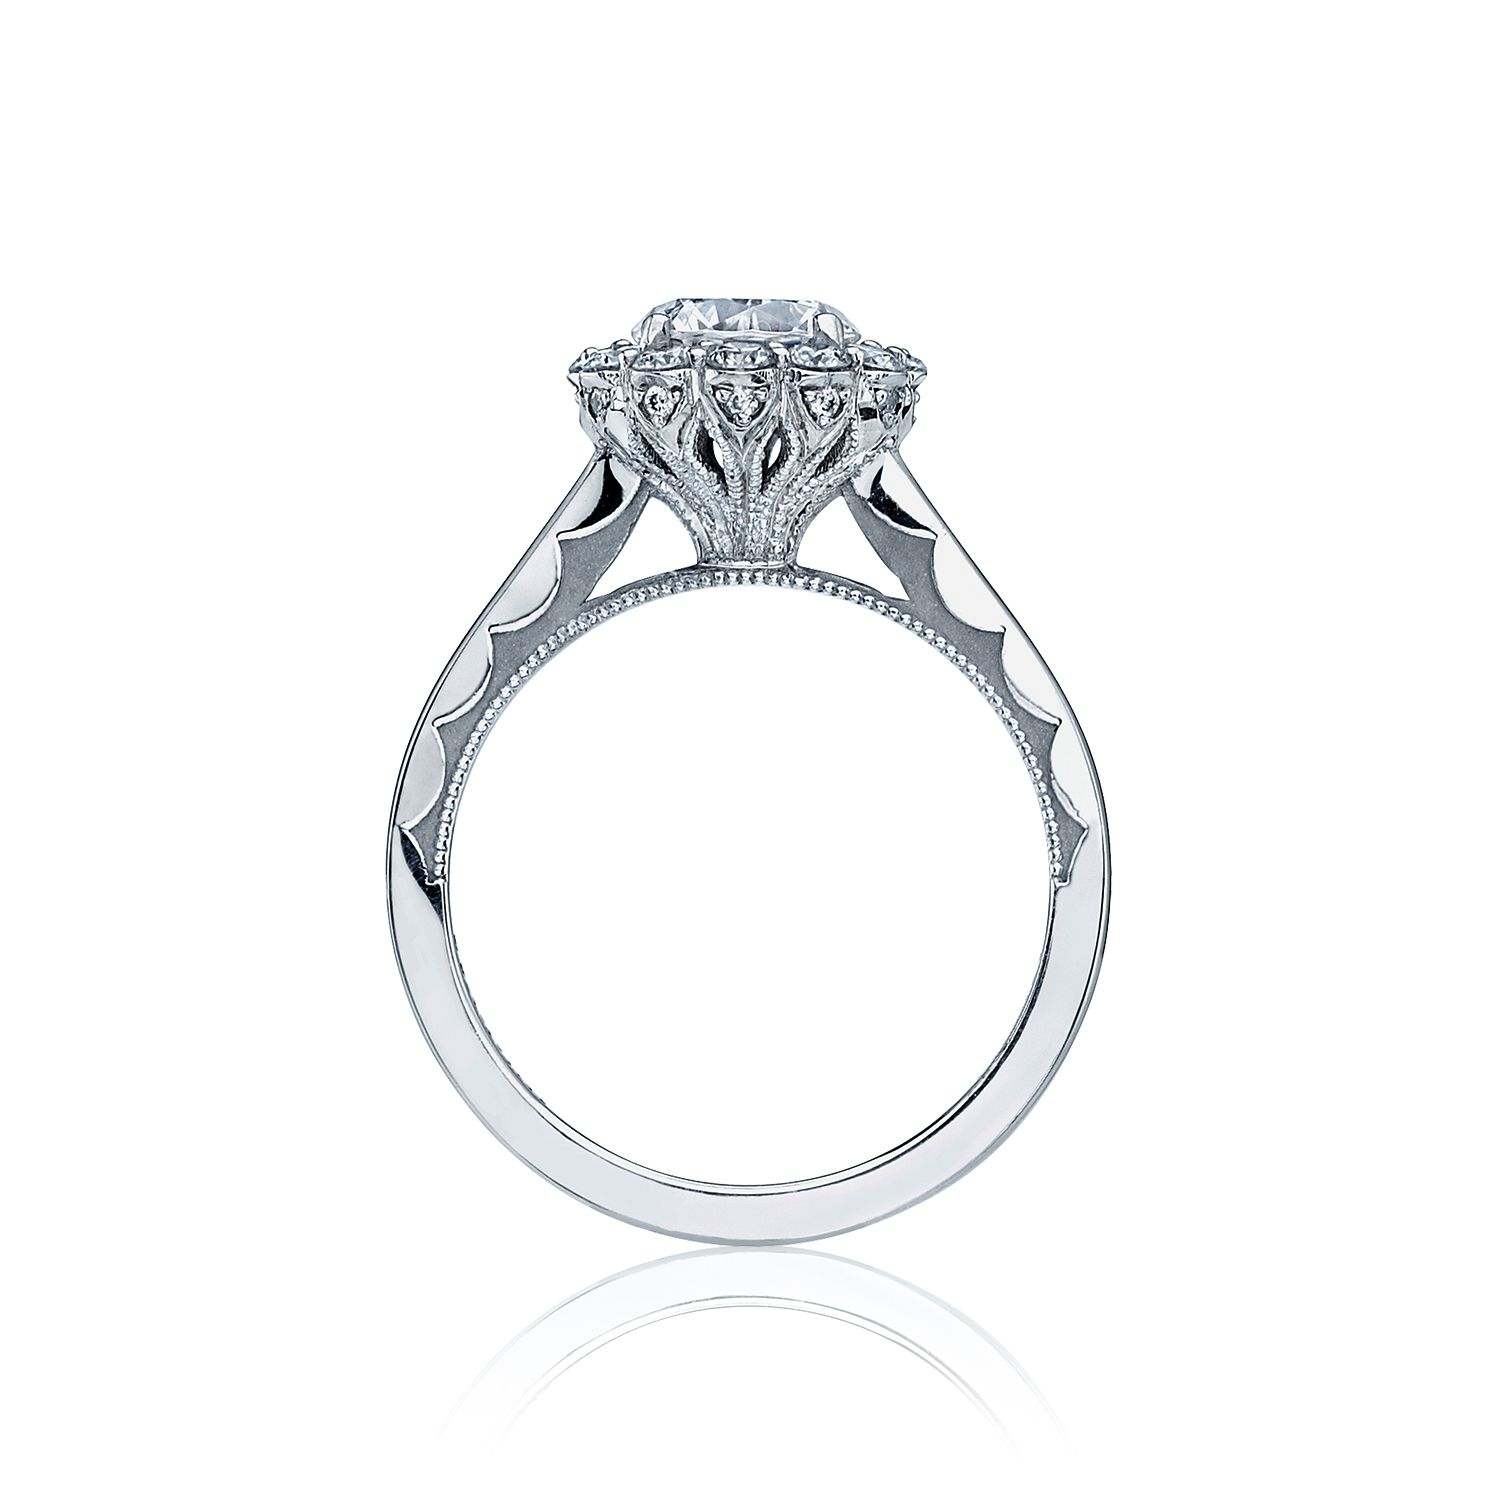 stones setting ring only cathedral for mountings bezel without wedding gemstone settings sale engagement rings jewellery